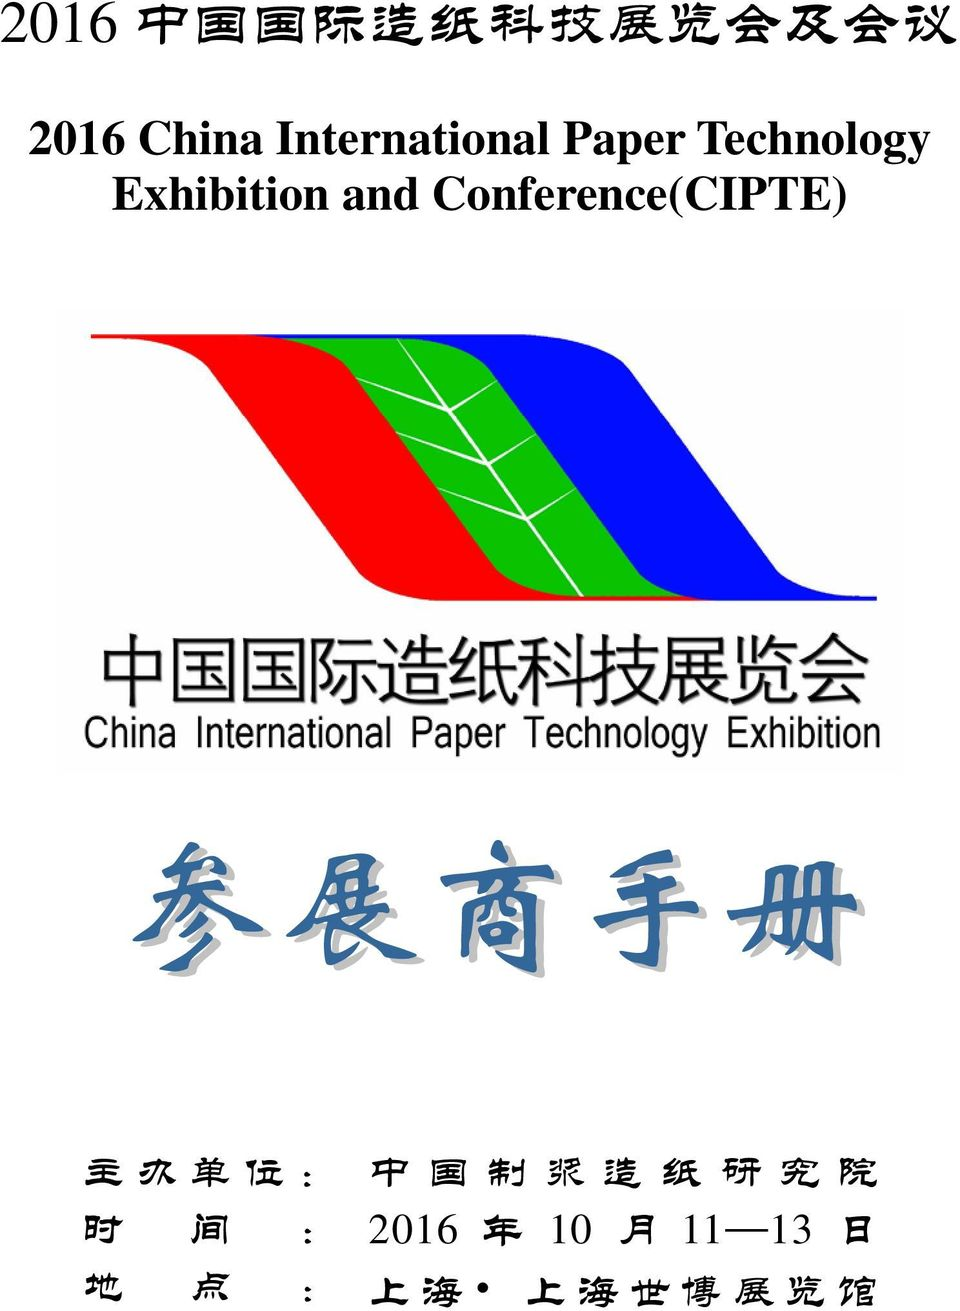 Conference(CIPTE) 主 办 单 位 : 中 国 制 浆 造 纸 研 究 院